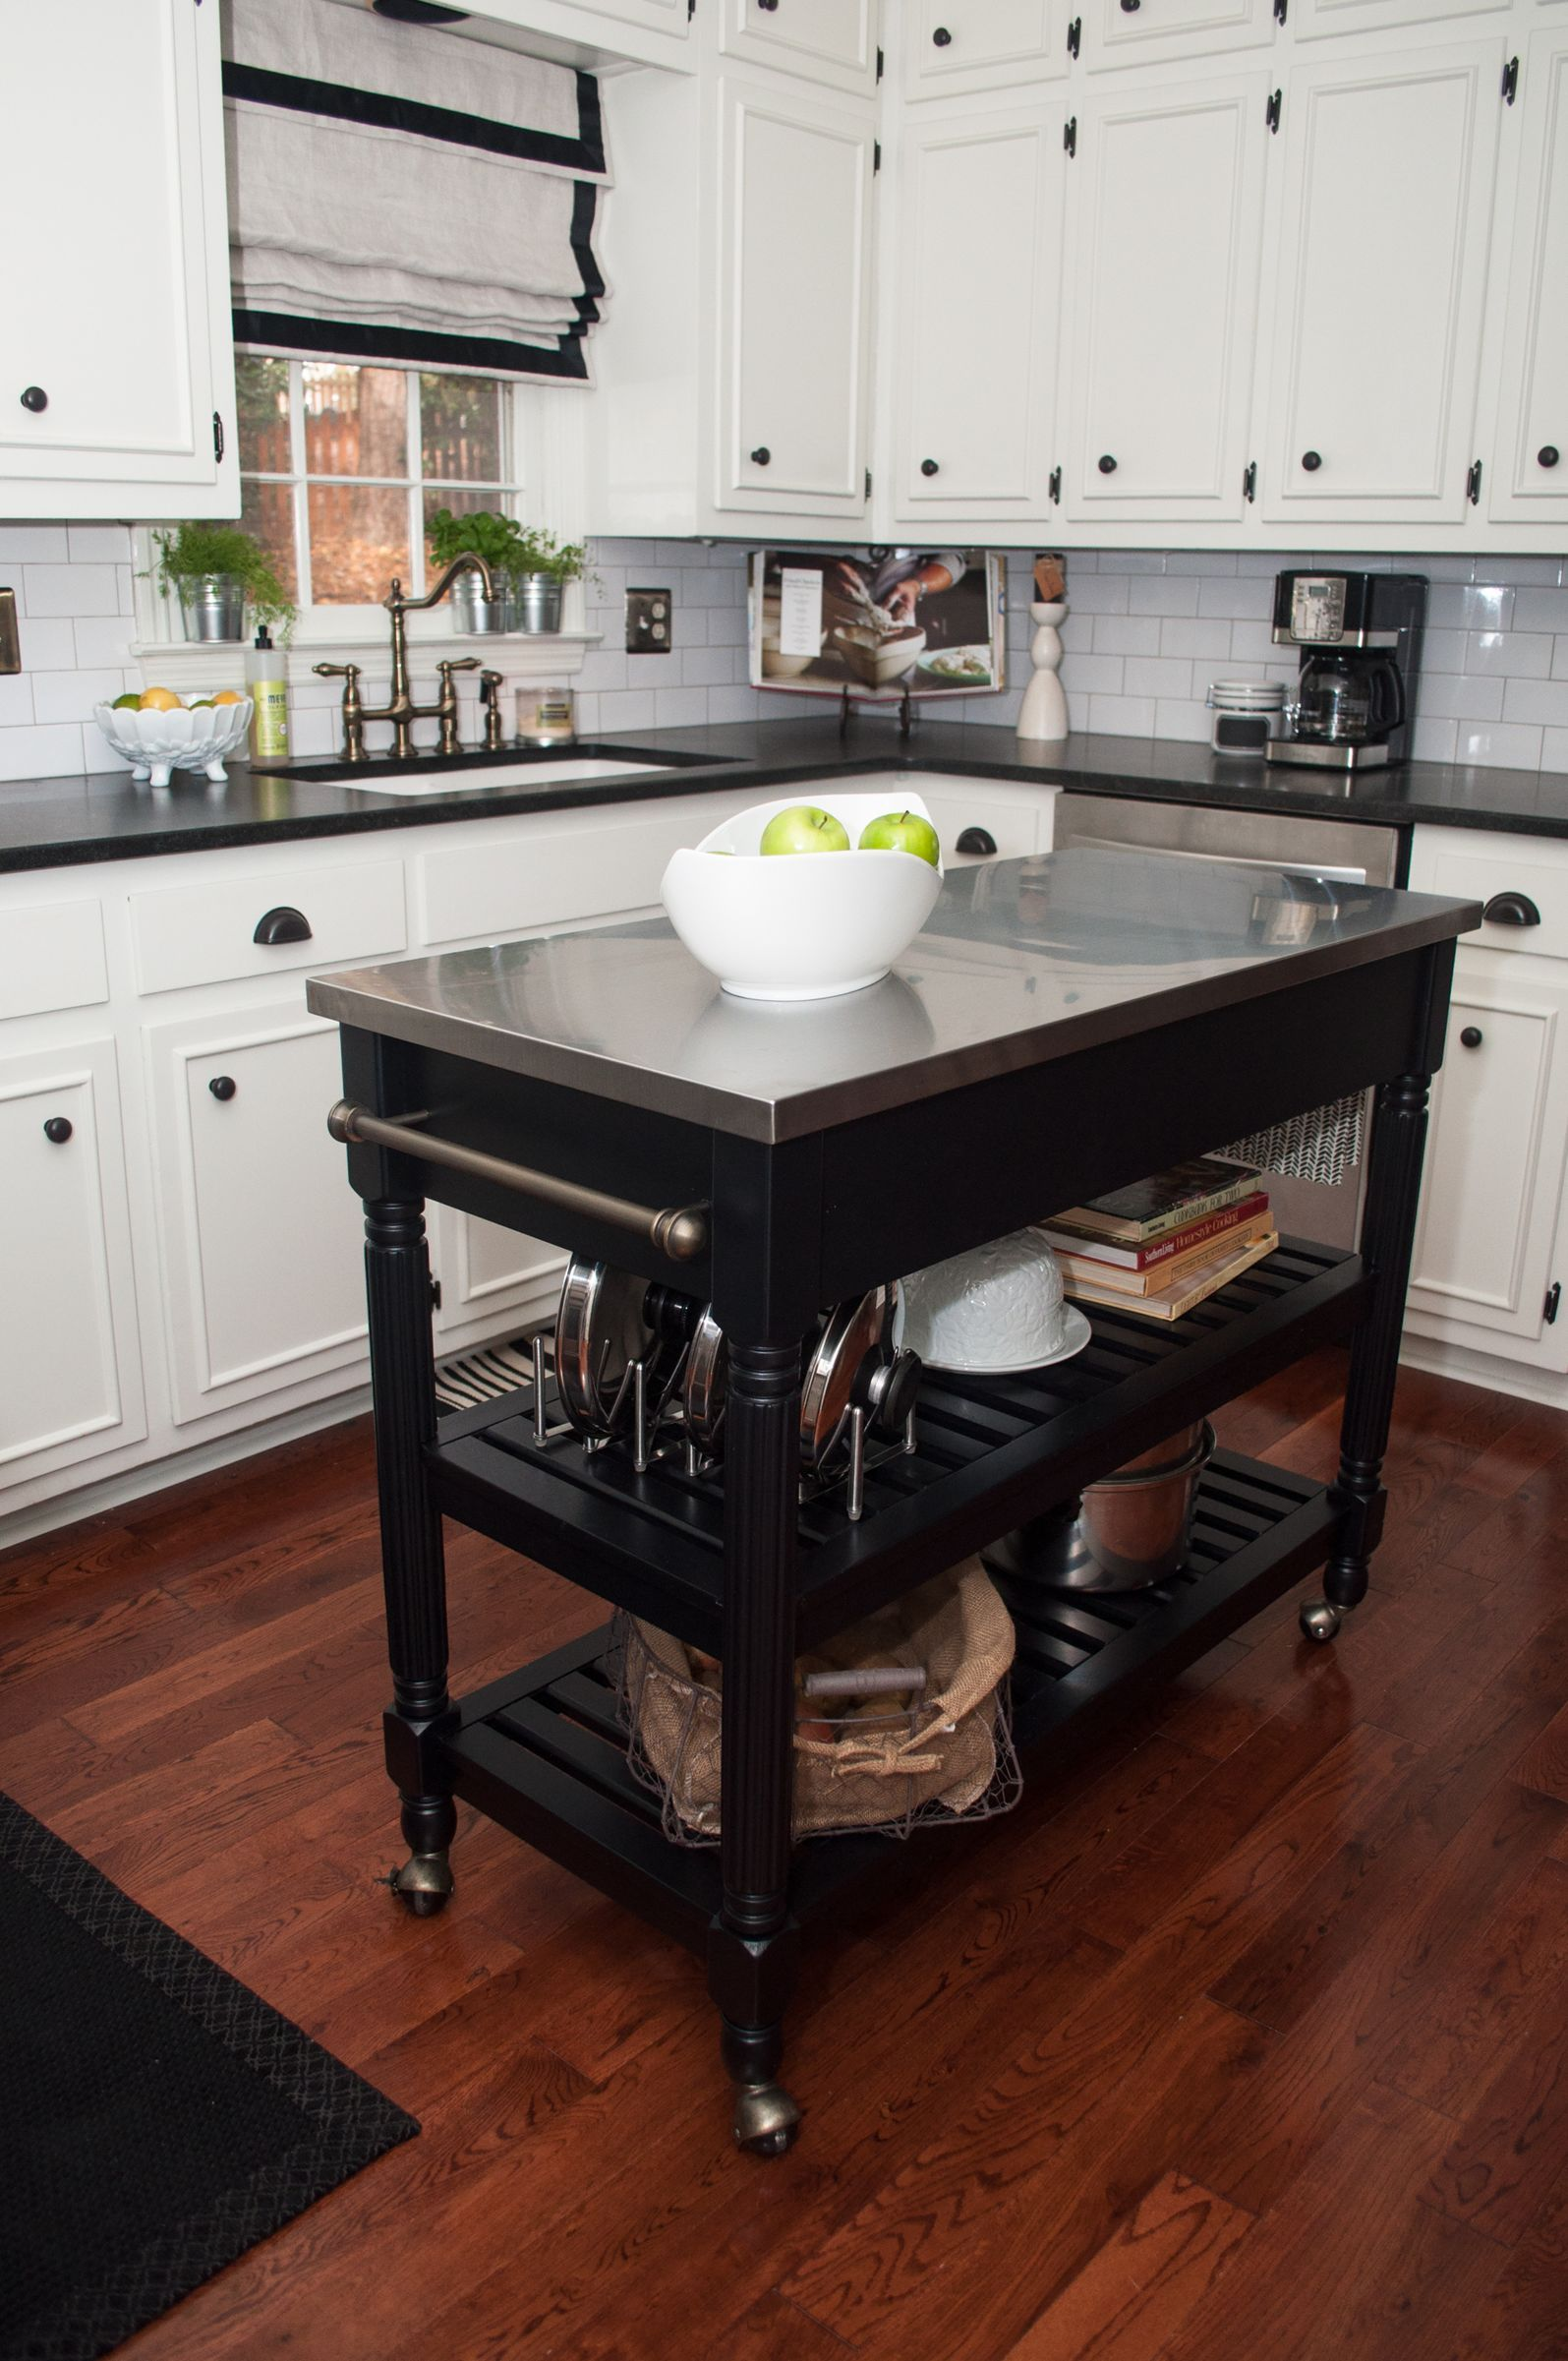 60 Types of Small Kitchen Islands & Carts on Wheels 2018